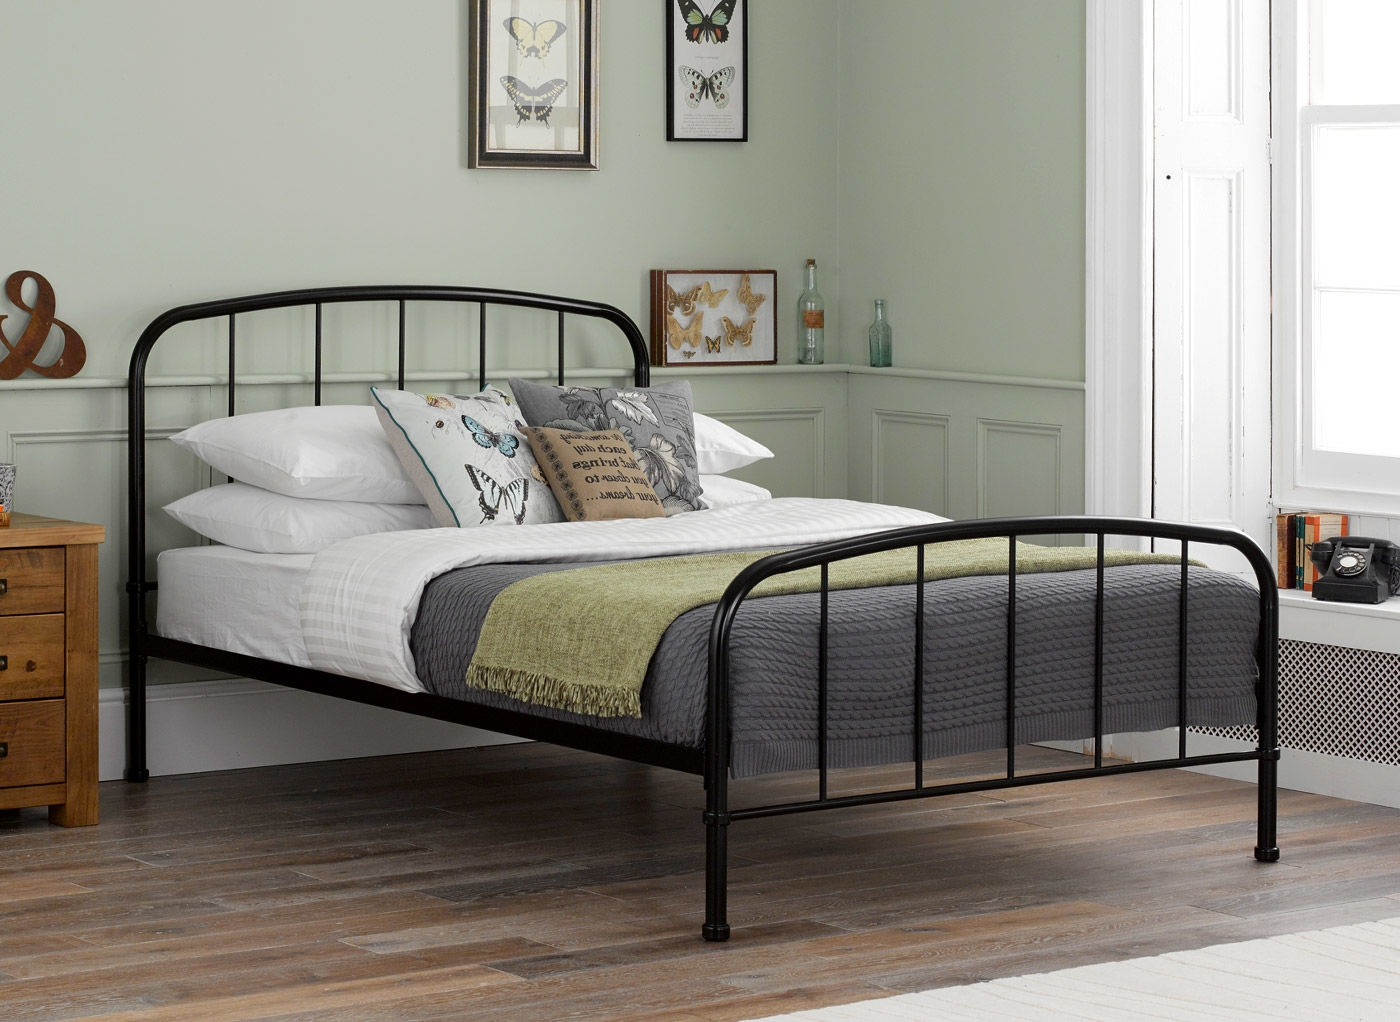 Traditional Metal Bed Frame